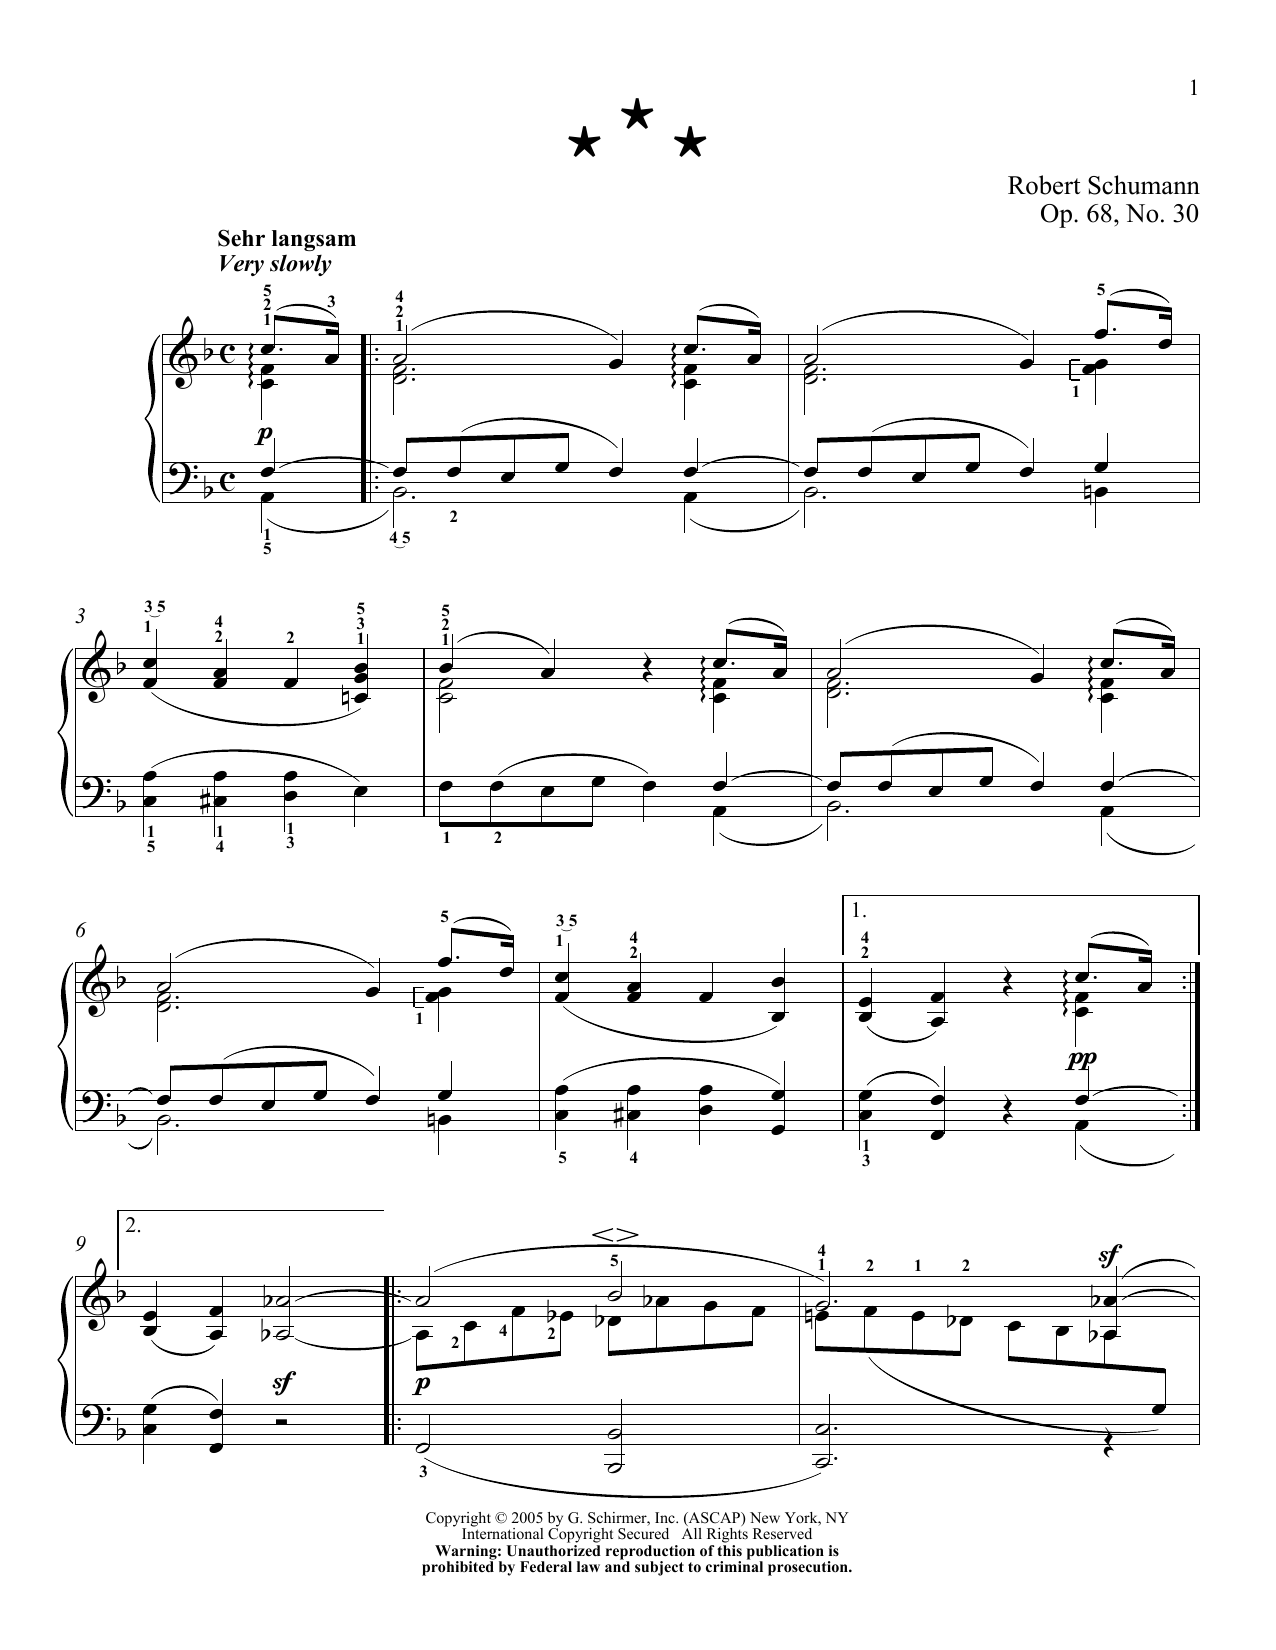 Robert Schumann Molto Lento, Op. 68, No. 30 sheet music notes and chords. Download Printable PDF.